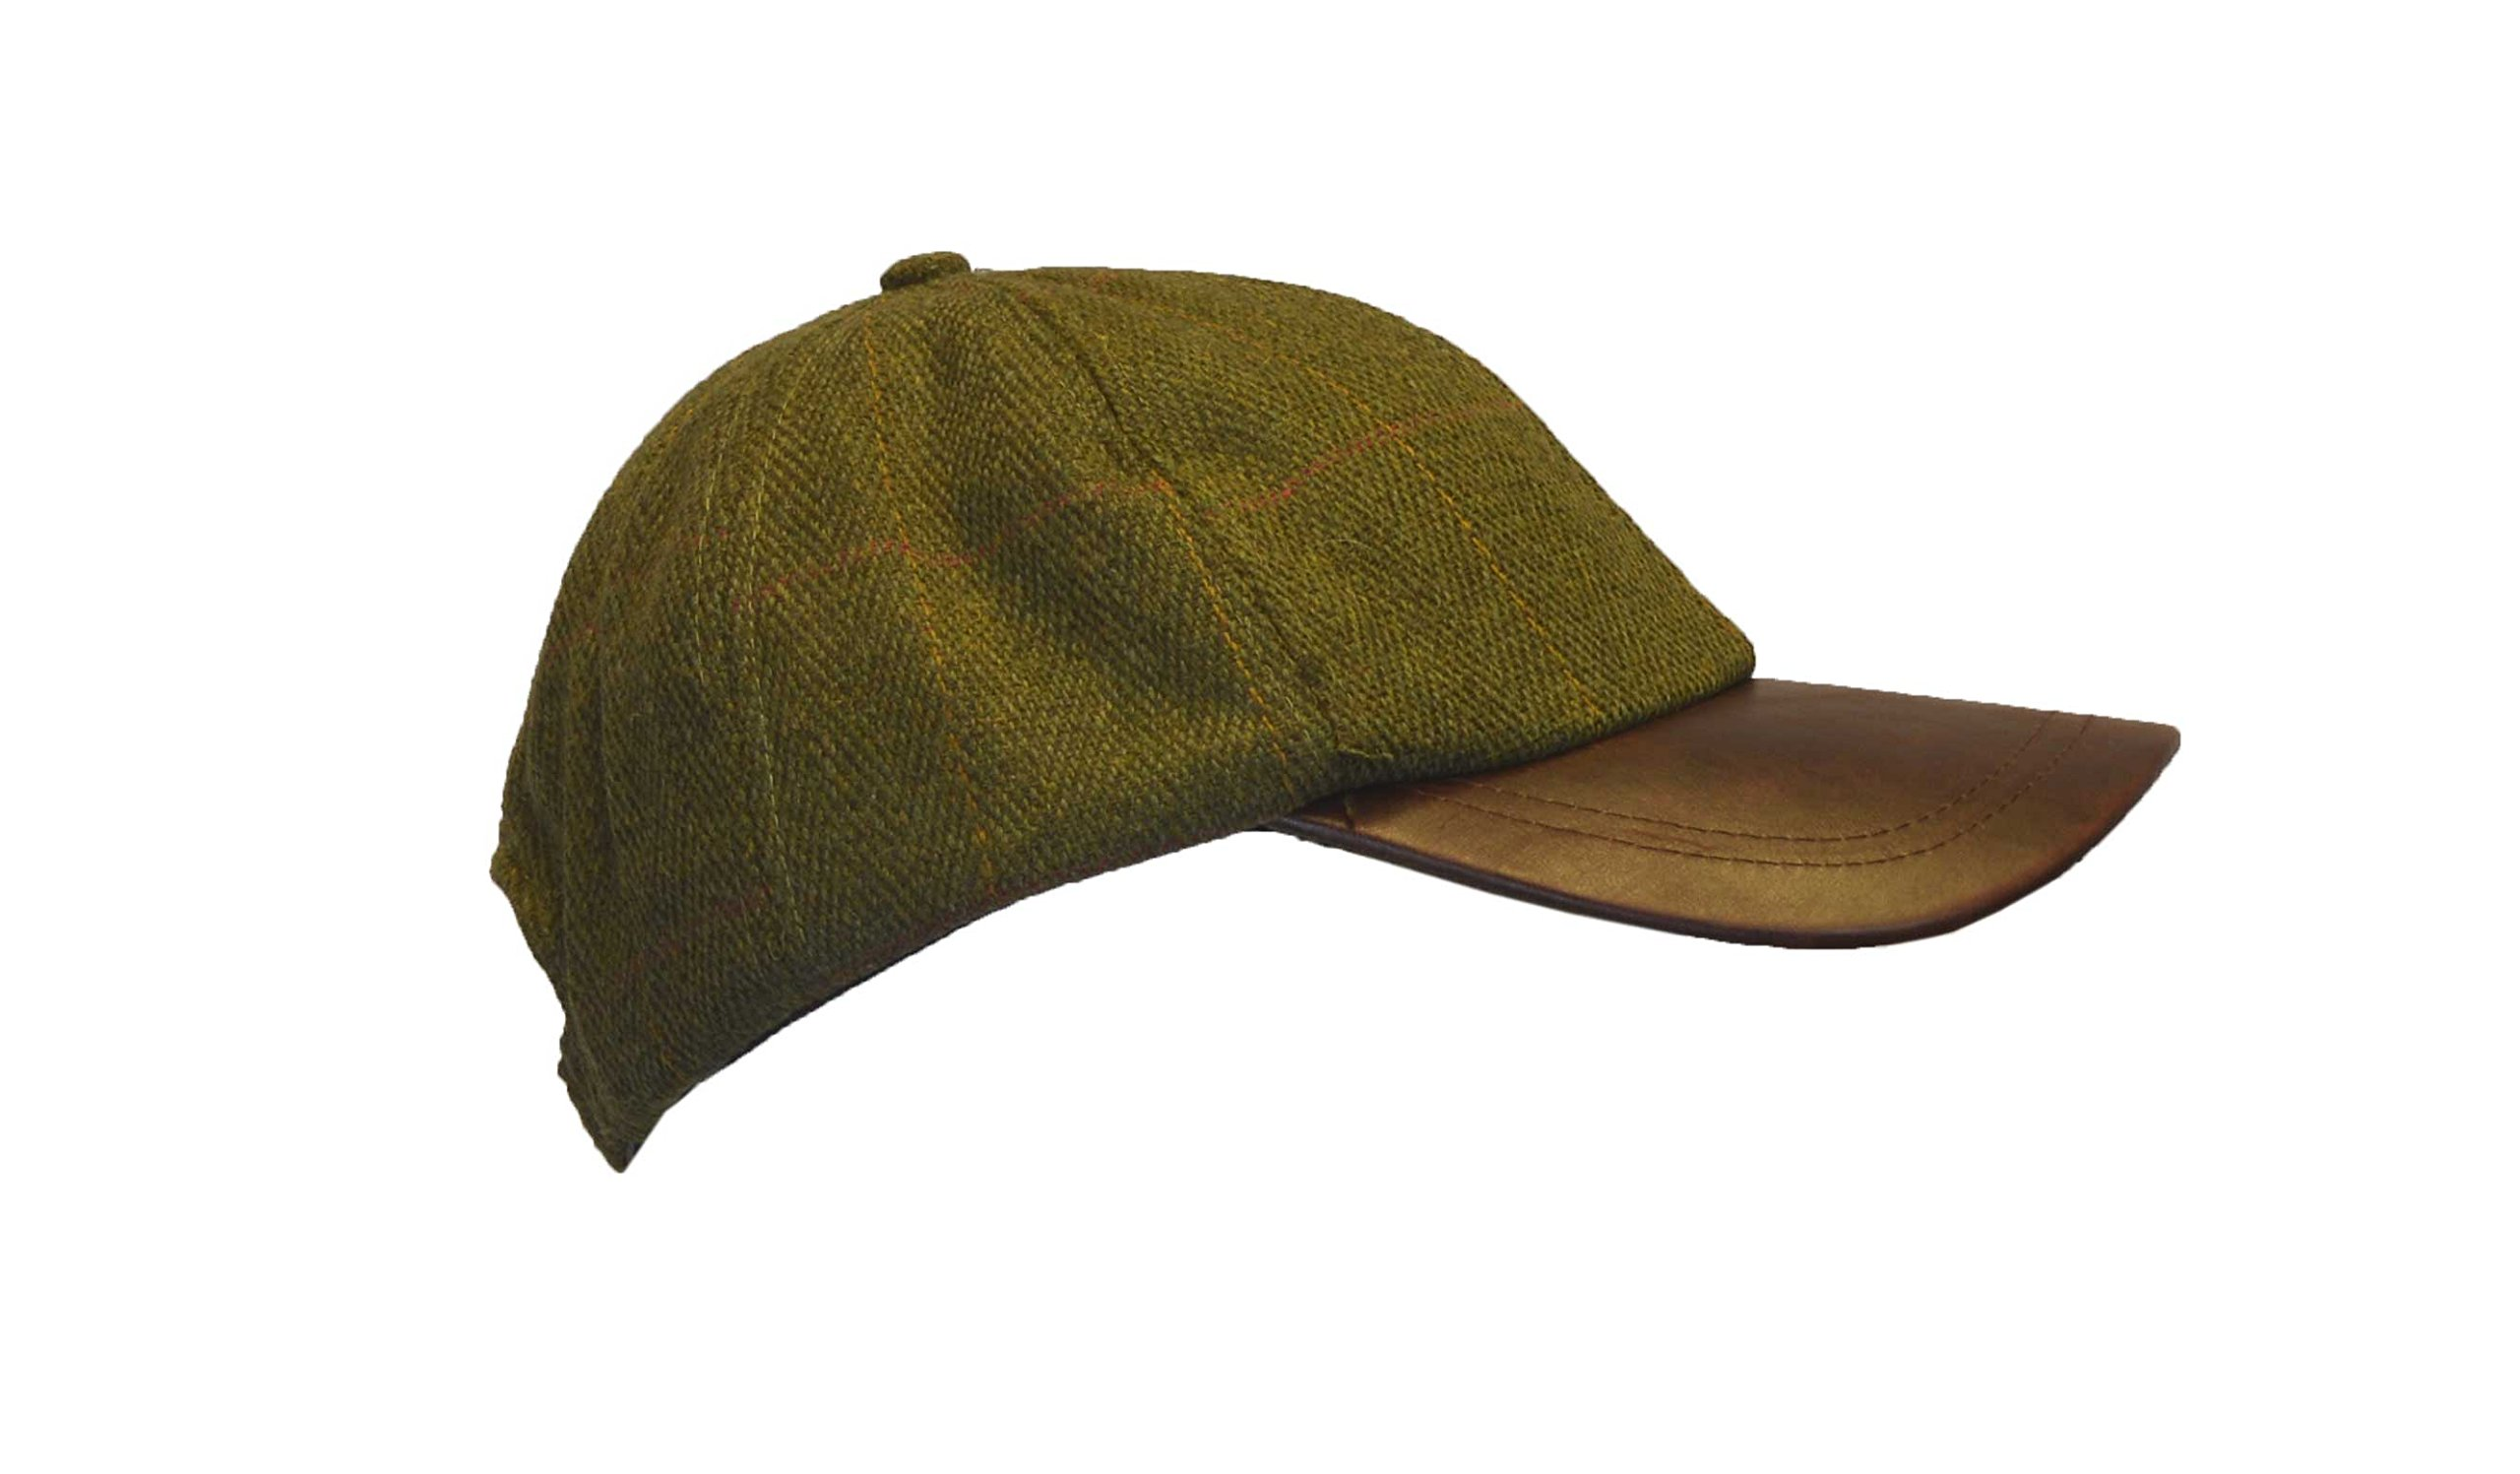 Walker and Hawkes Big Boys' Derby Tweed Baseball Cap Leather Peak Hunting Hat One Size Dark Sage